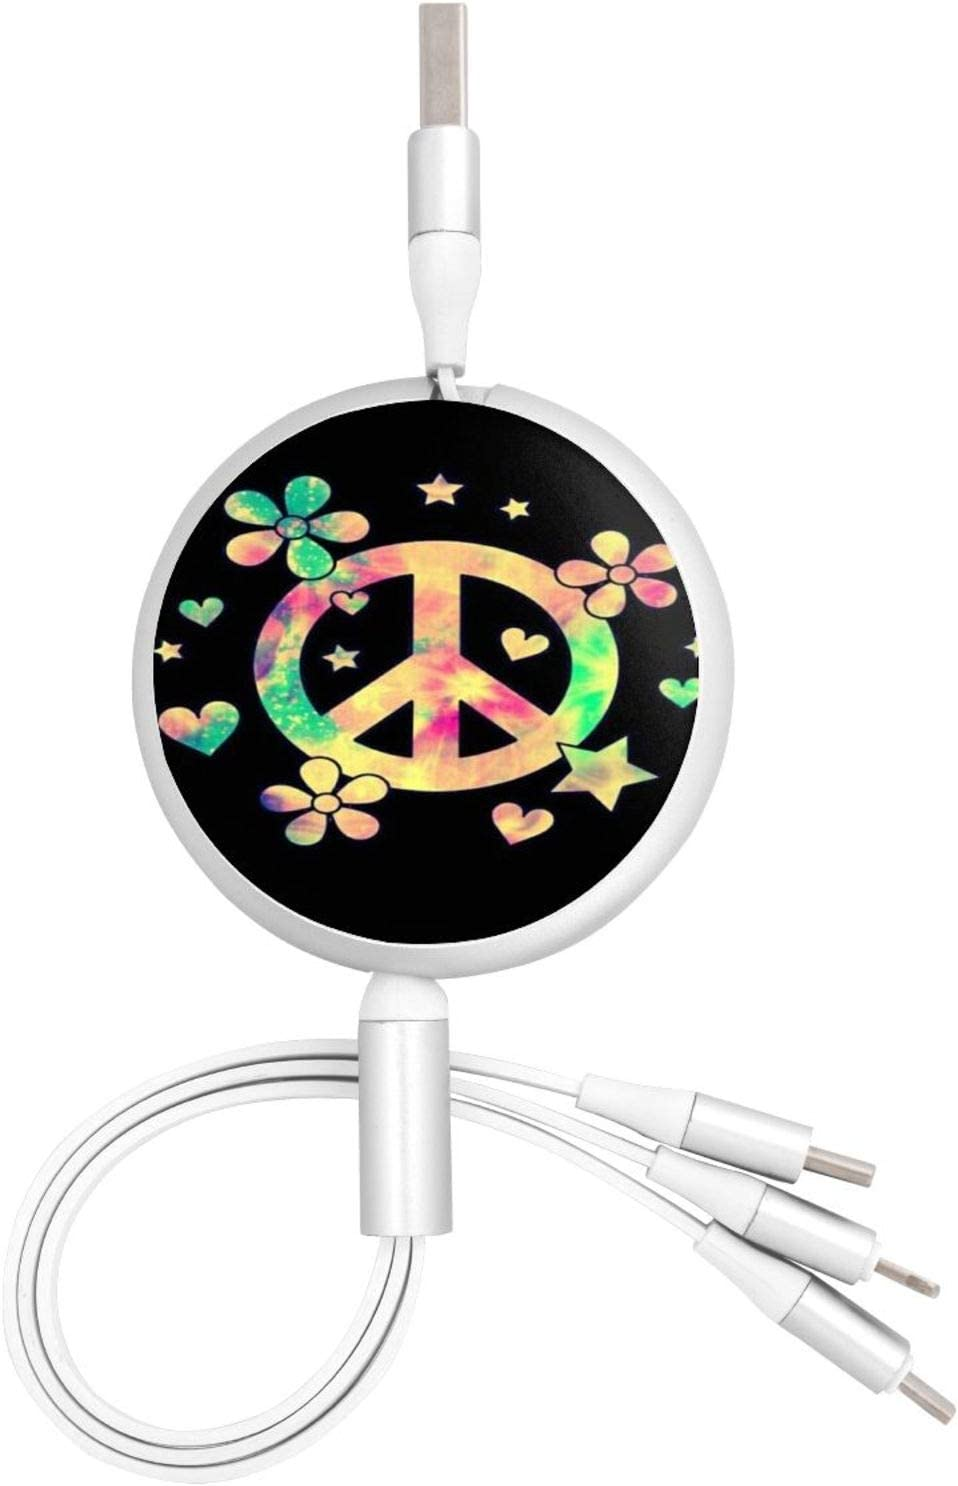 Multi Charging Cable Portable 3 in 1 Peace Love USB Cable USB Power Cords for Cell Phone Tablets and More Devices Charging